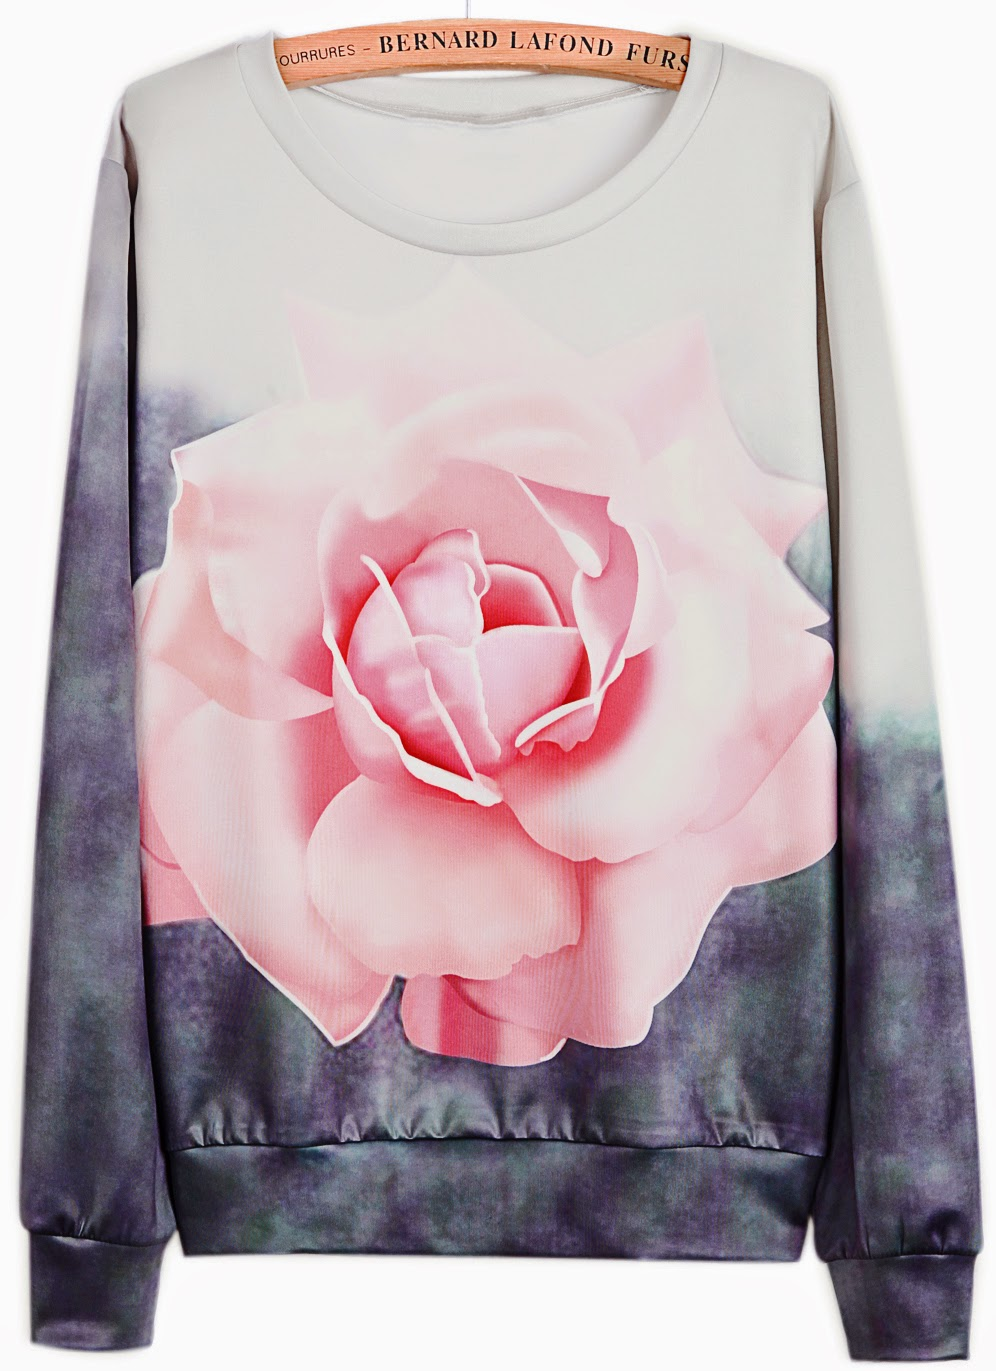 http://www.sheinside.com/White-Grey-Long-Sleeve-Rose-Print-Sweatshirt-p-159344-cat-1773.html?aff_id=461